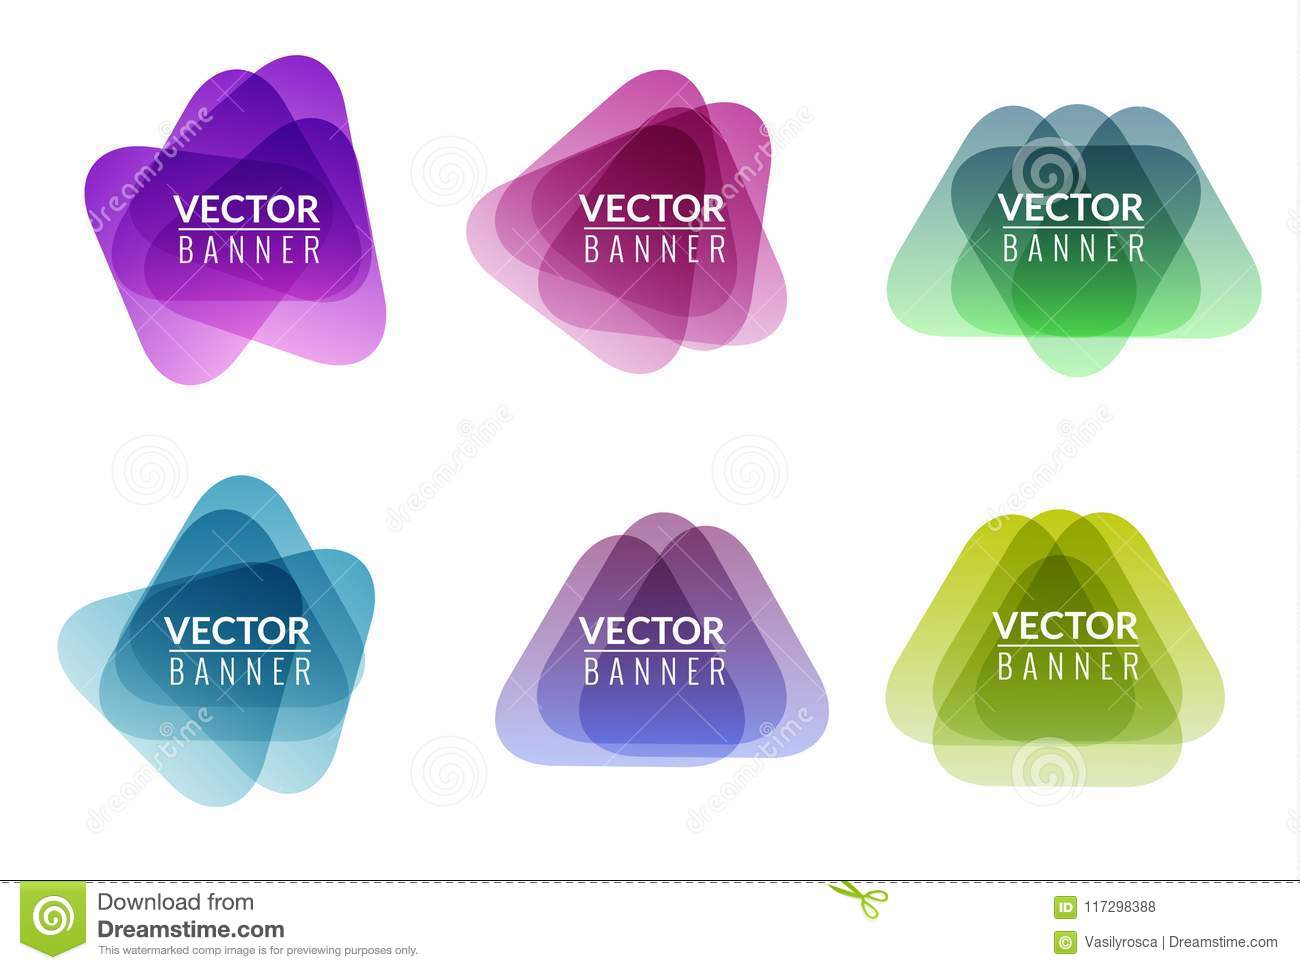 Set of colorful round abstract banners overlay shape. Graphic banners design. Label graphic fun tag concept